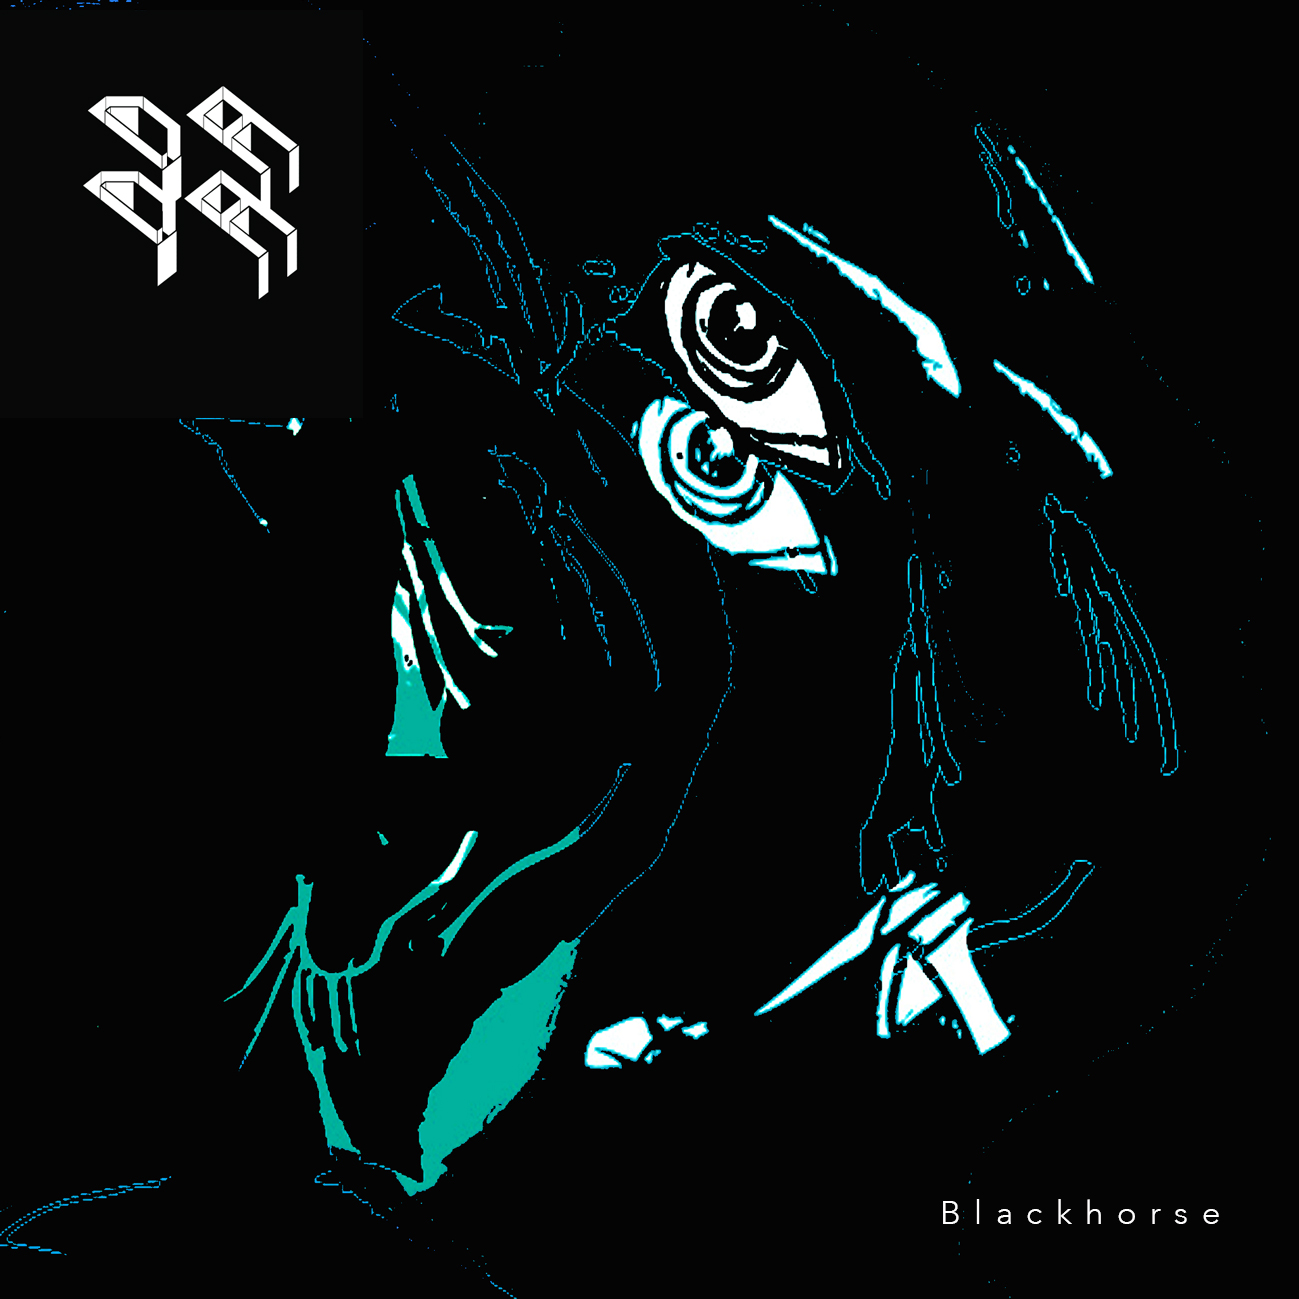 """""""Black Horse"""" by DaDa is Northern Transmissions' 'Song of the Day'."""